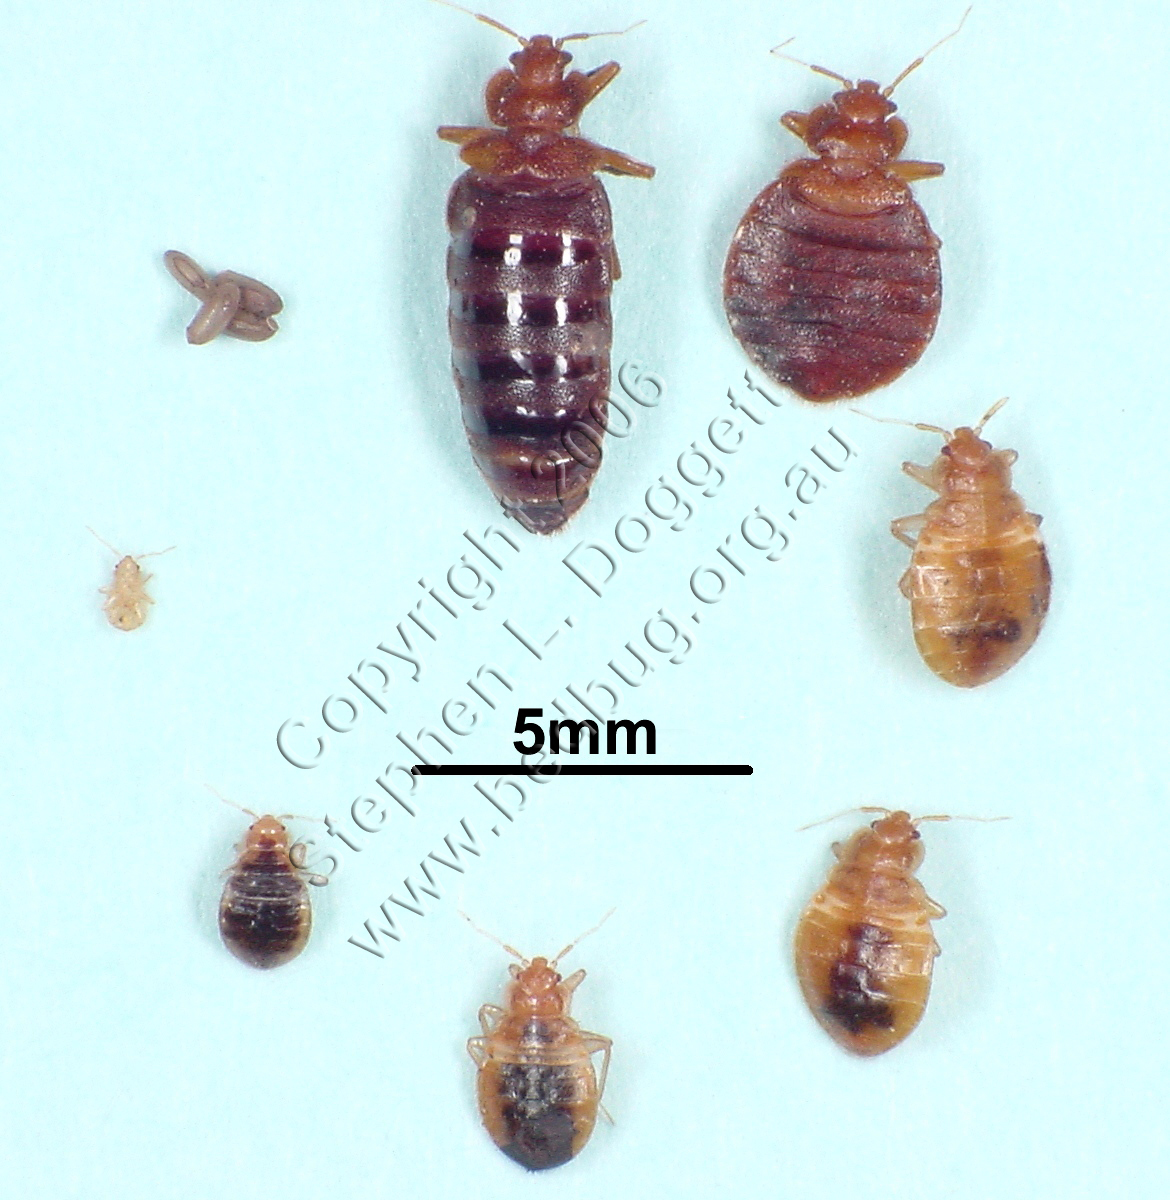 Small Brown Bugs In Bedroom Do I Have Bed Bugs Are These Bed Bug Bites